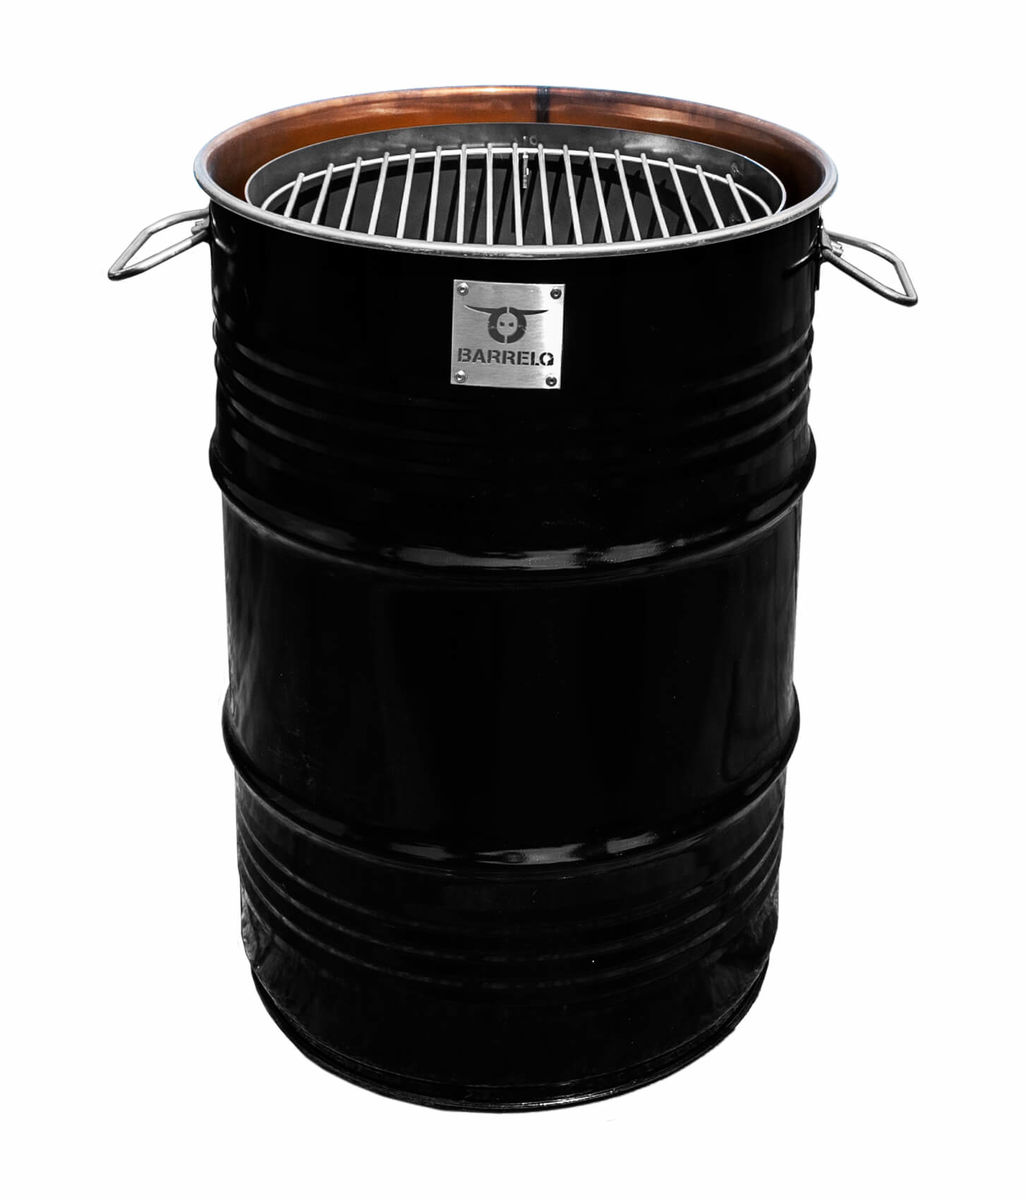 Image of BarrelQ Notorious Small Grill schwarz